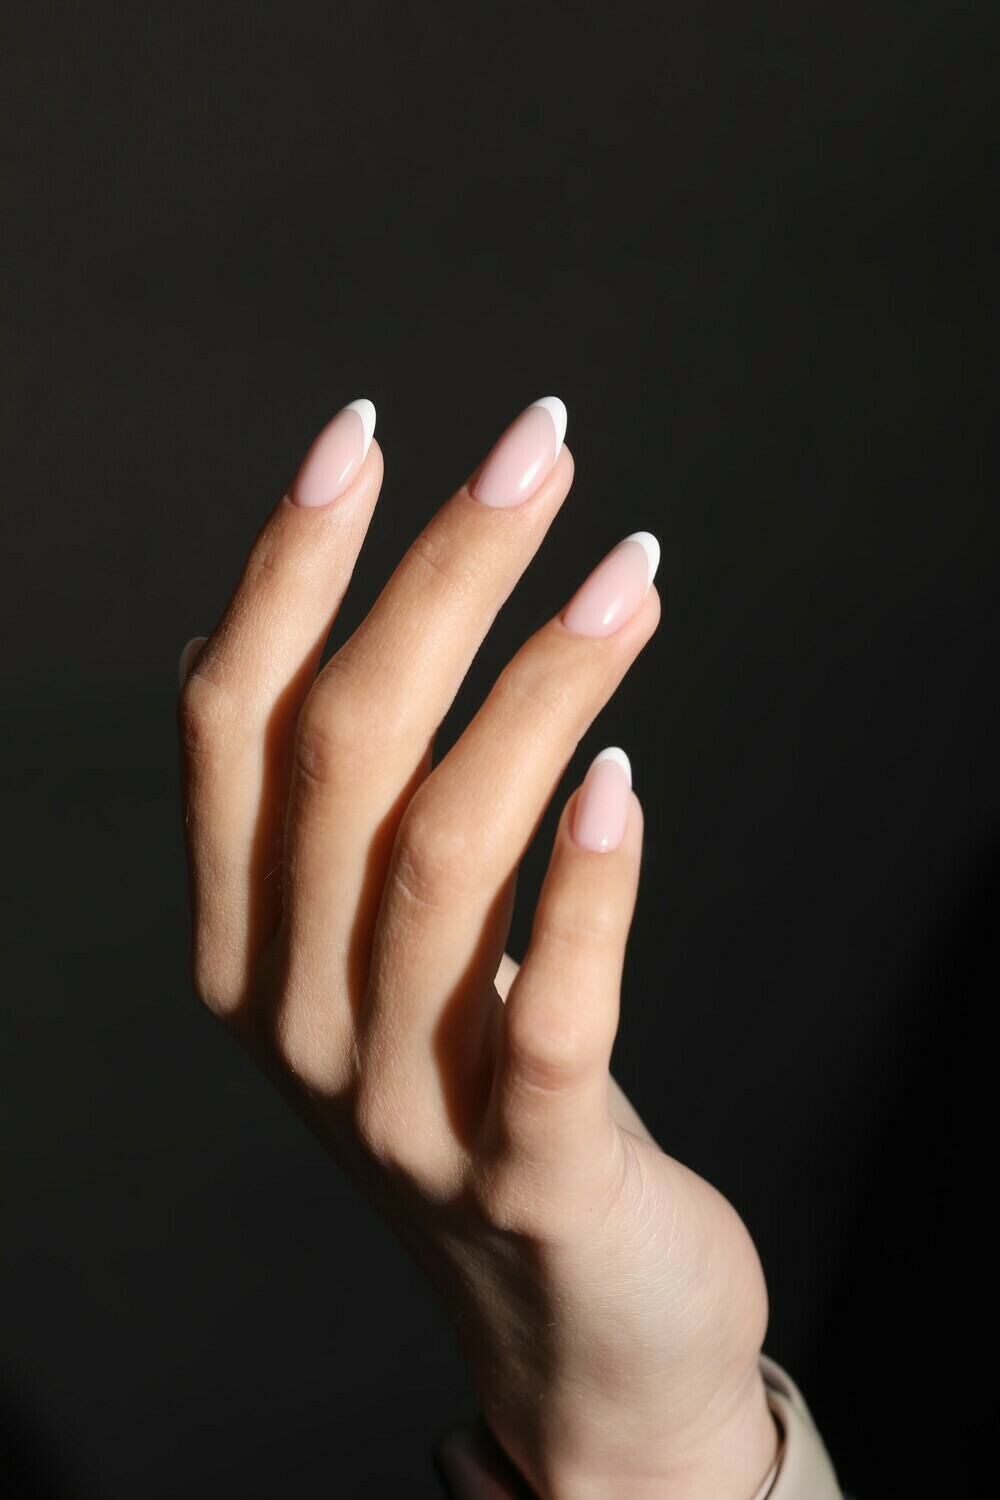 Gel Nails Course for Beginners 16/03/2021